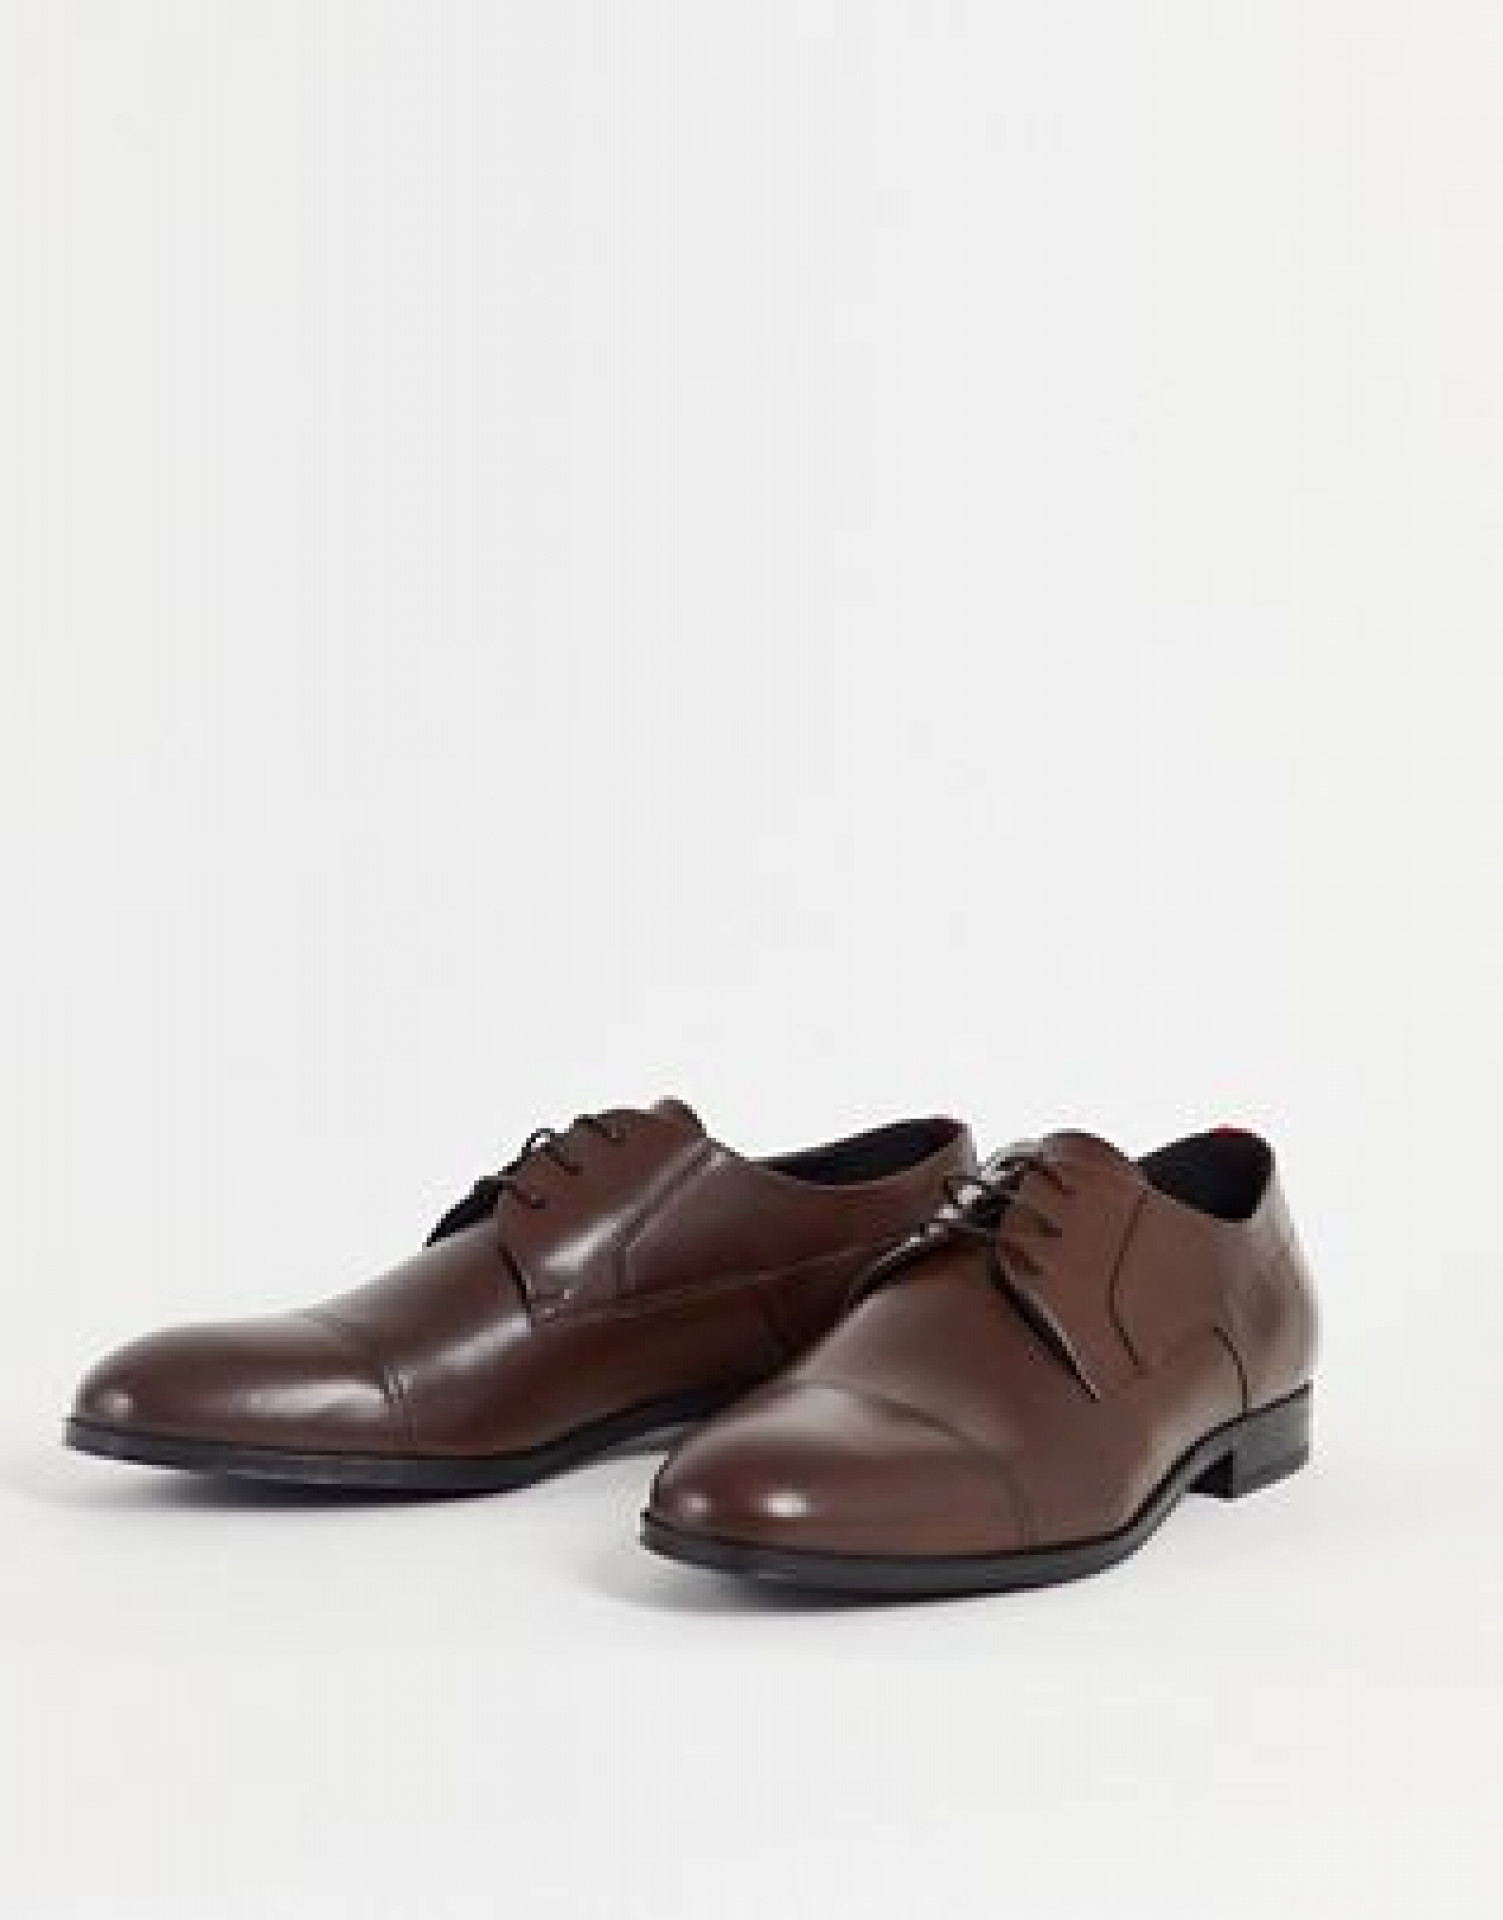 HUGO Boheme lace up shoes in brown